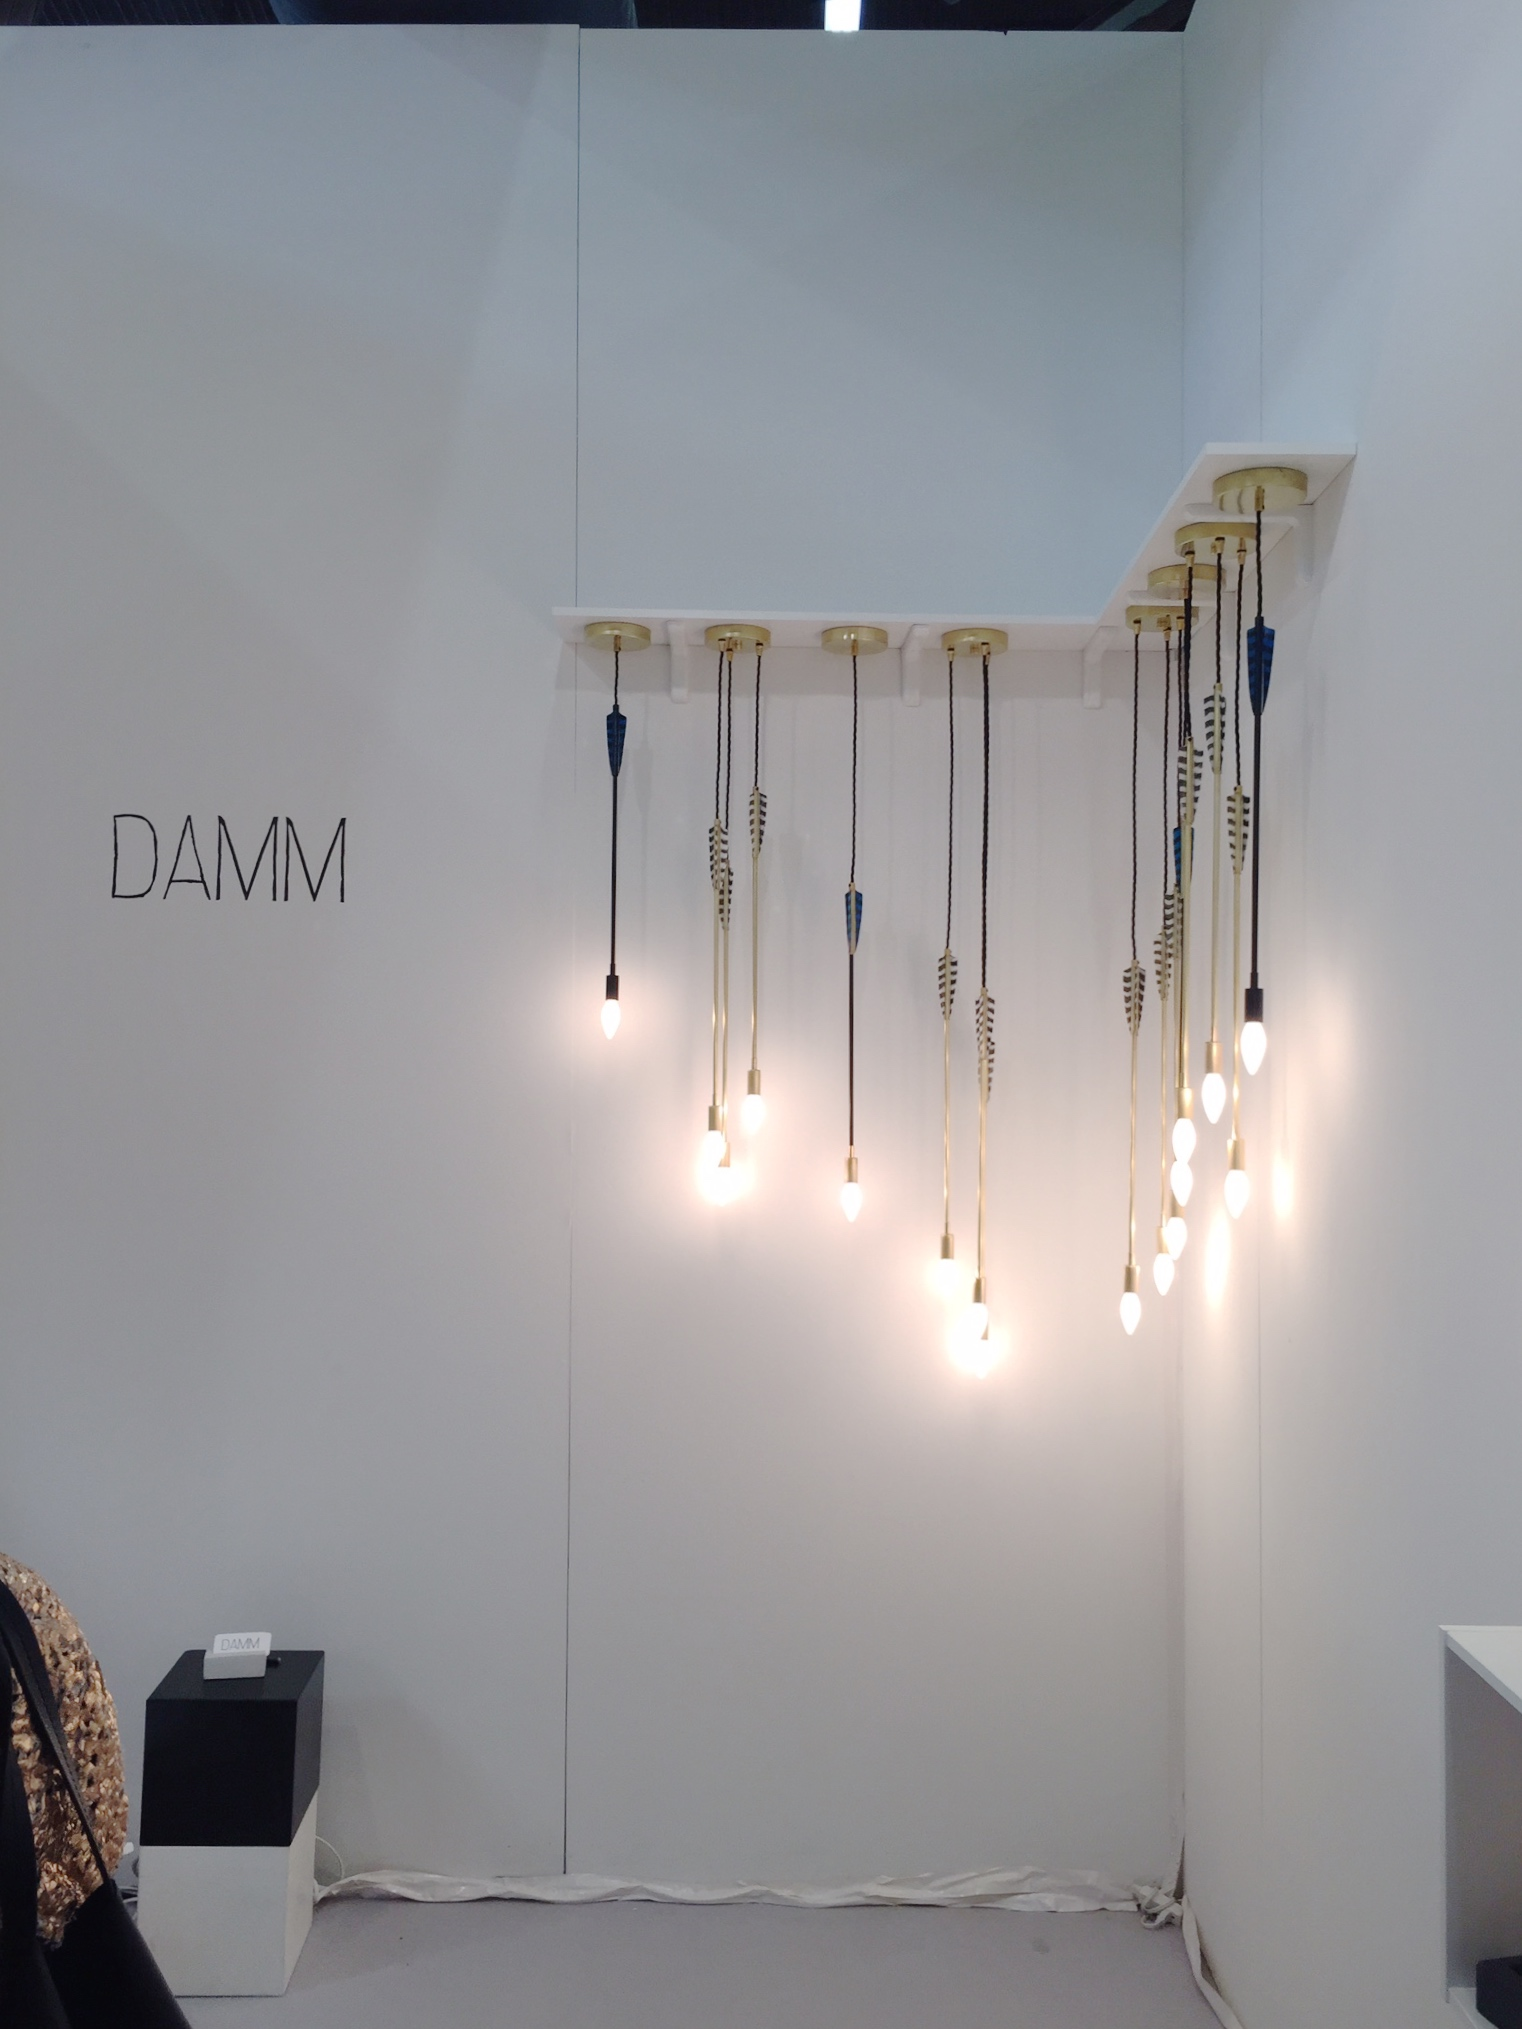 unique and playful lighting by Damm unlike we've seen anywhere else!